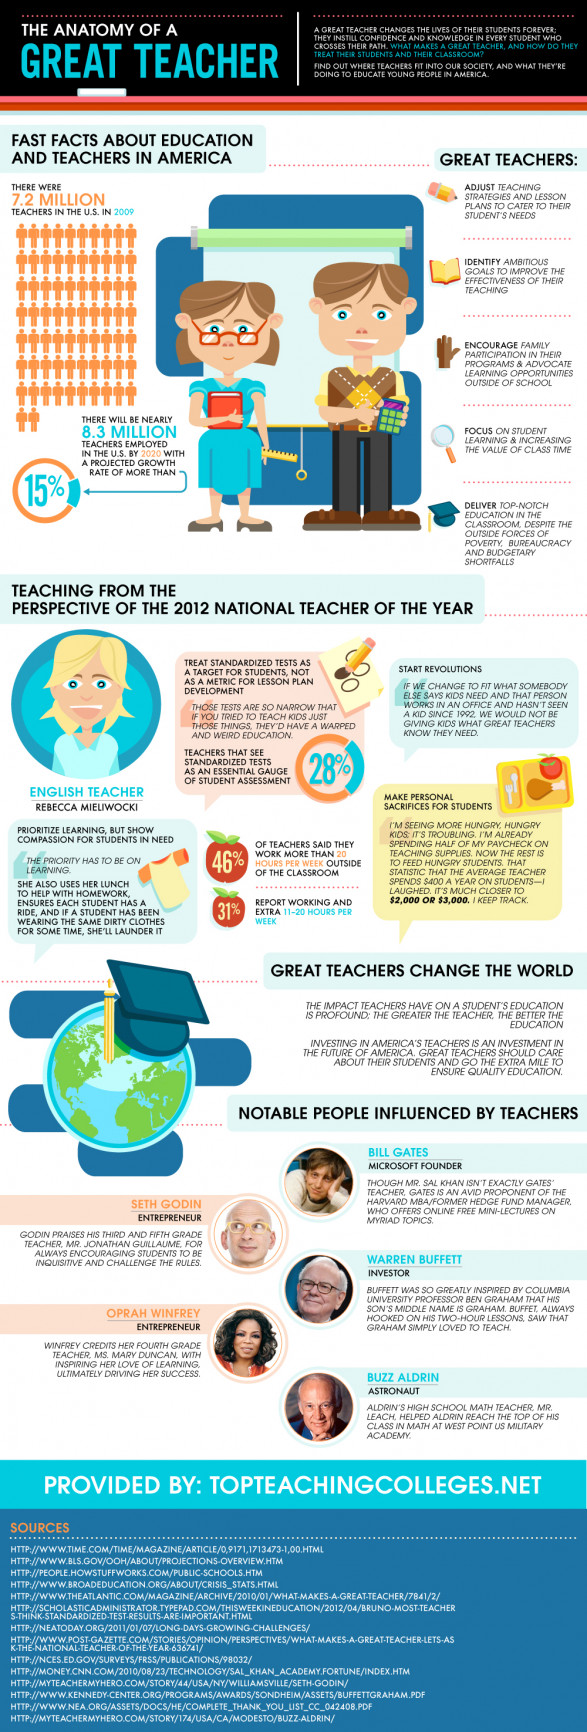 The Anatomy of a Great Teacher